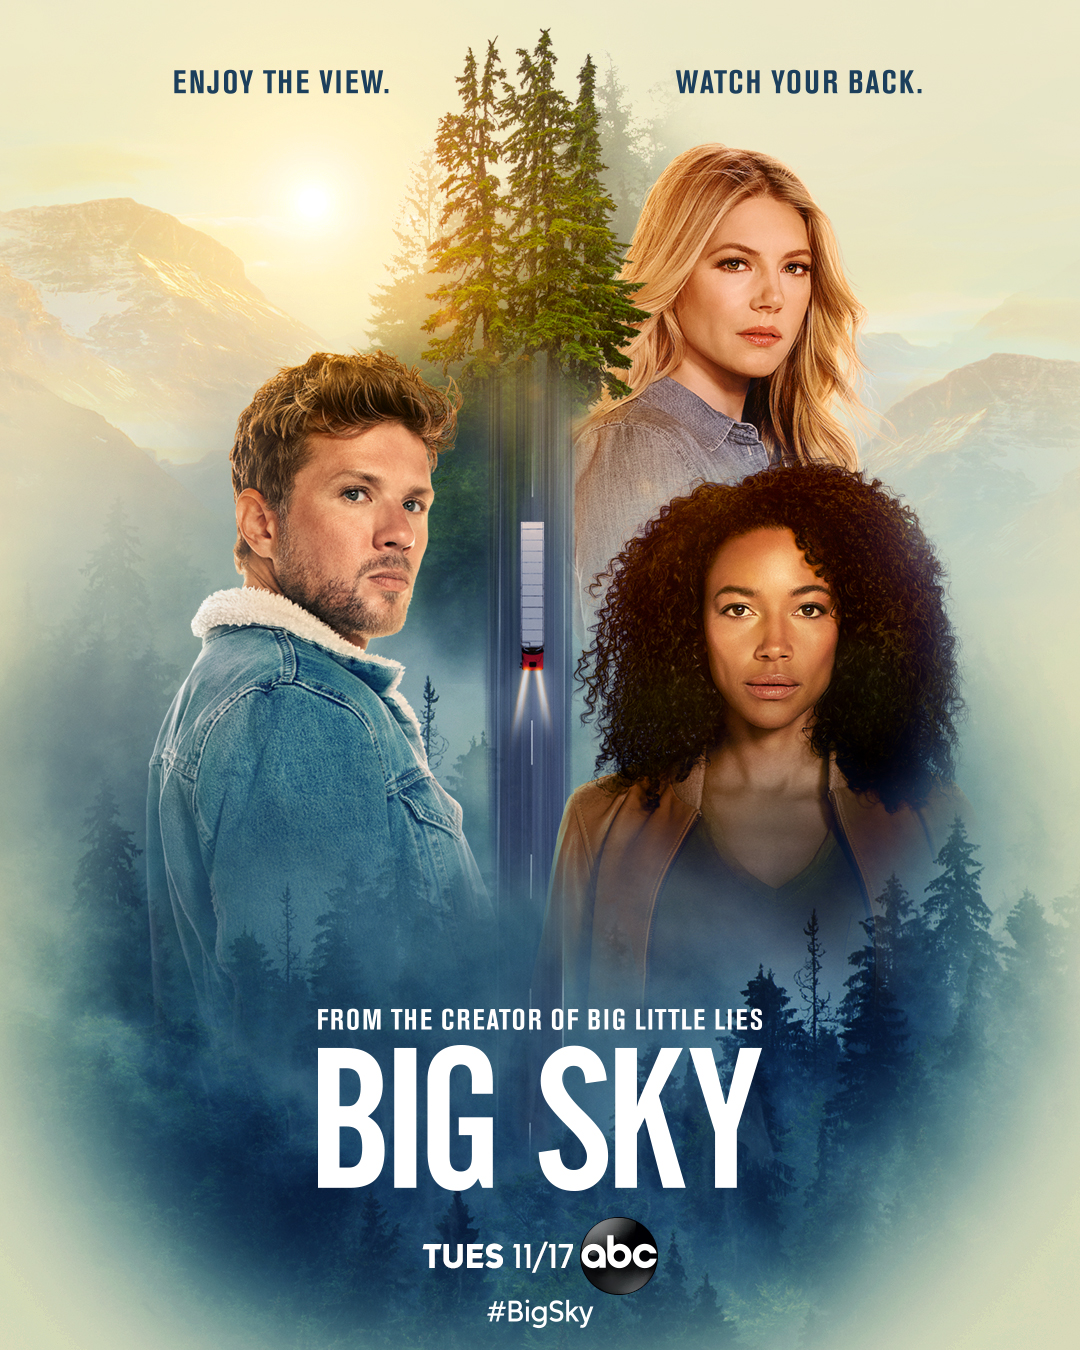 Big Sky series debut has Ryan Phillippe in a Dark, Surprising Plot-Twist